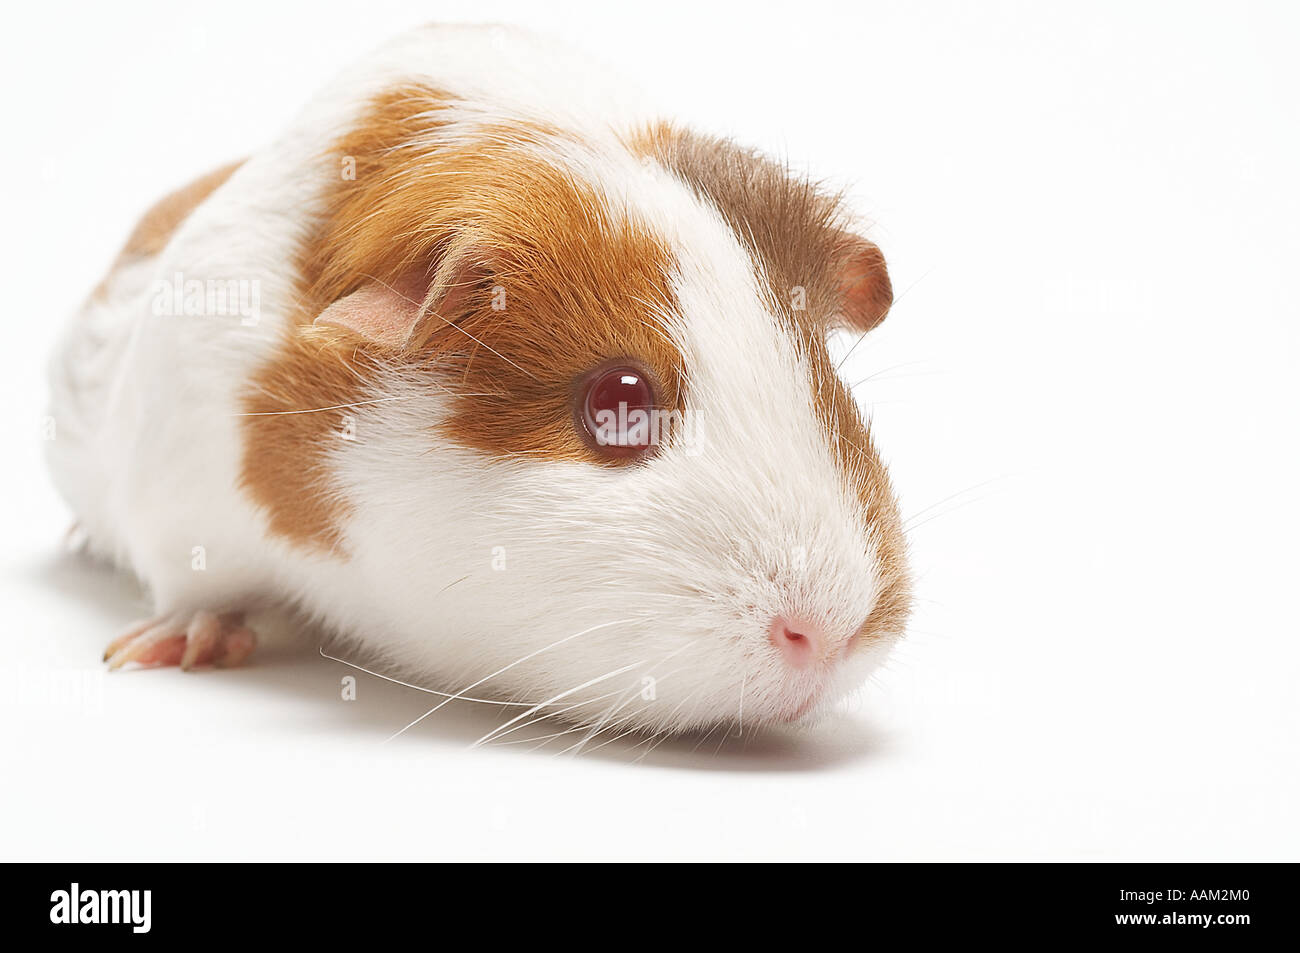 Guinea pigs pig pet cute cuddle furry animal test for Guinea pig pictures free